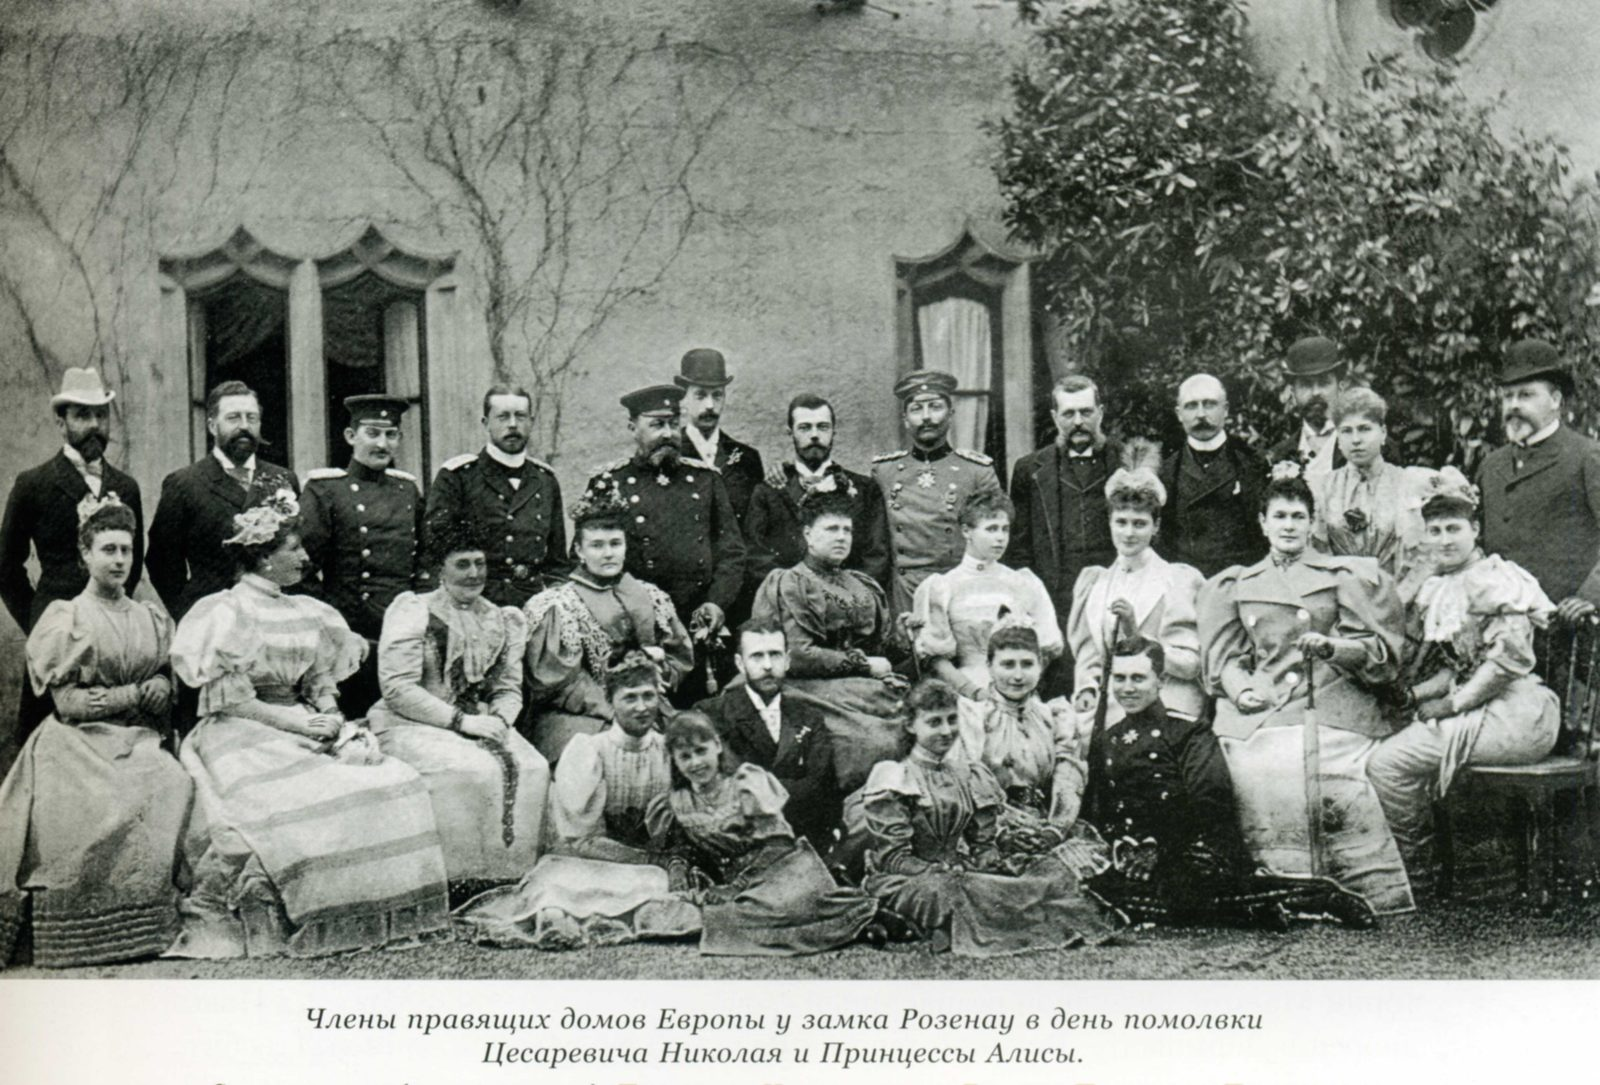 Members of the ruling houses of Europe at the castle of Rosenau on the day of the engagement of the Heir to the Russian throne of Tsesarevich Nikolai Alexandrovich and Hessian princess Alisa.